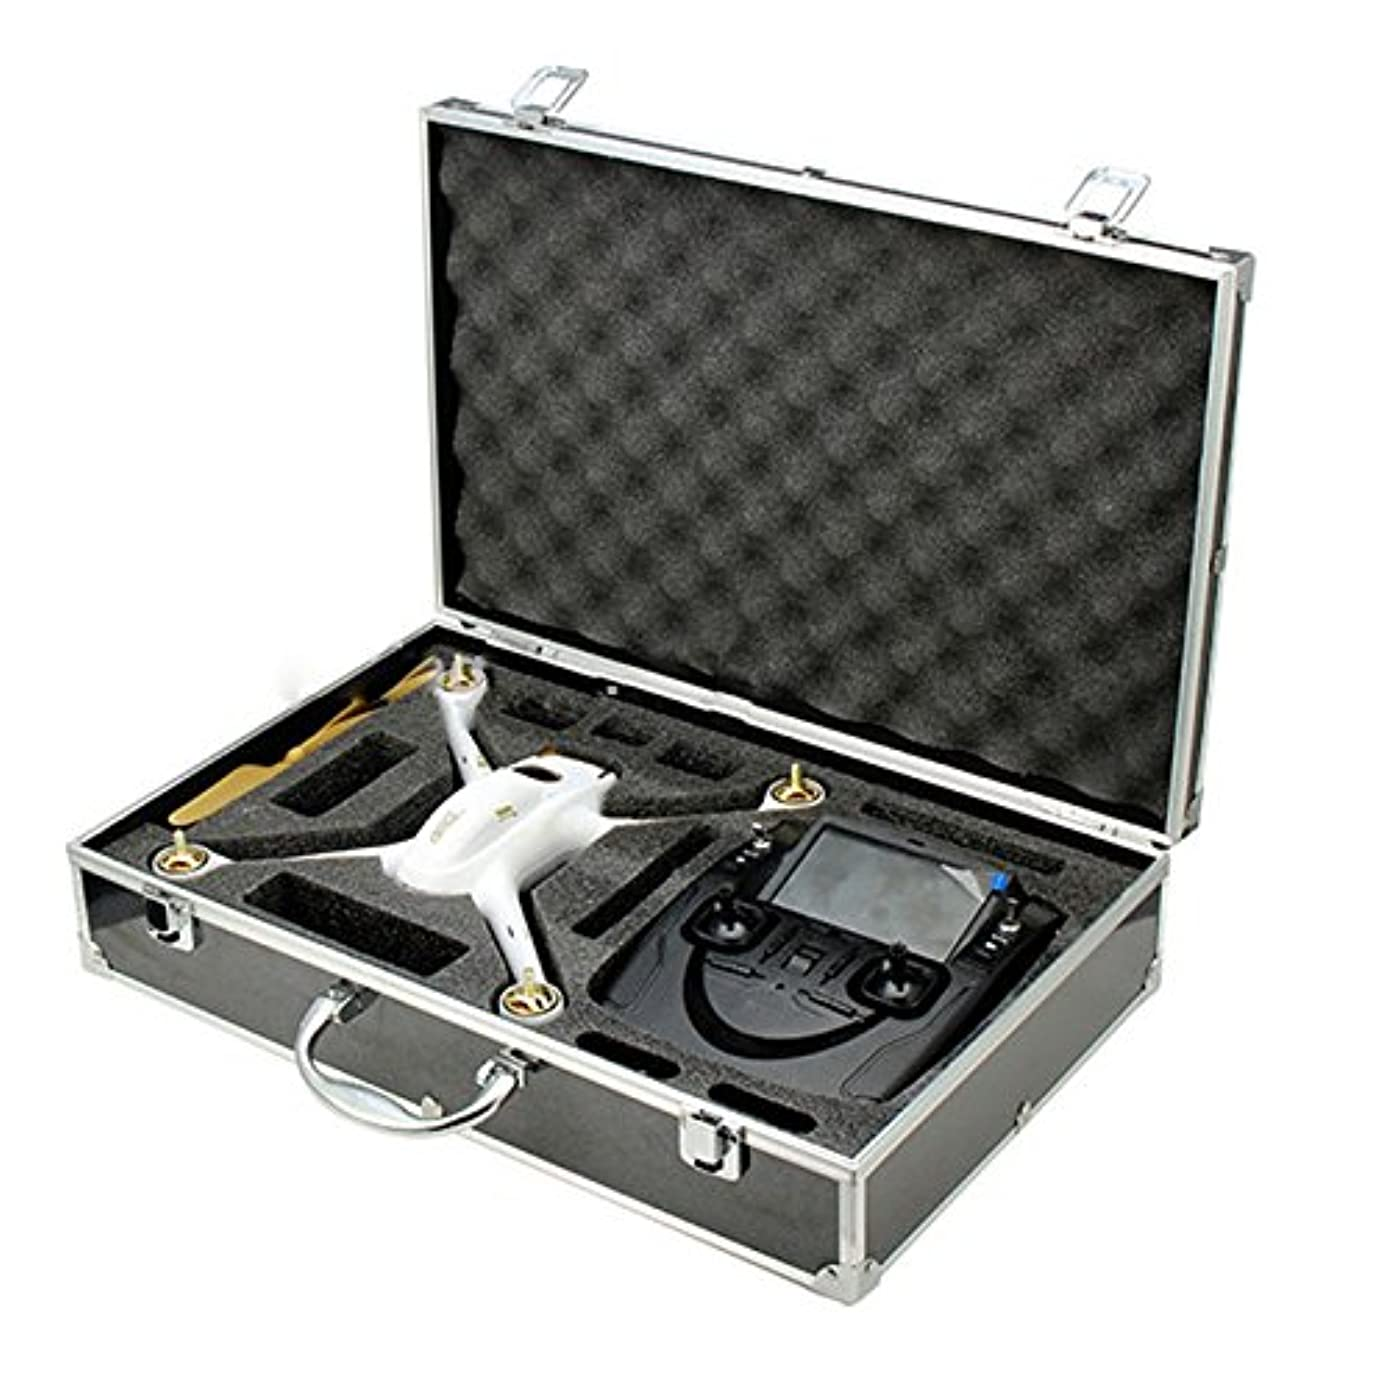 Hubsan H501S X4 Camera Drone Backpack Use Aluminum Suitcase Carrying Box Case Hubsan H501S X4 RC Quadcopter